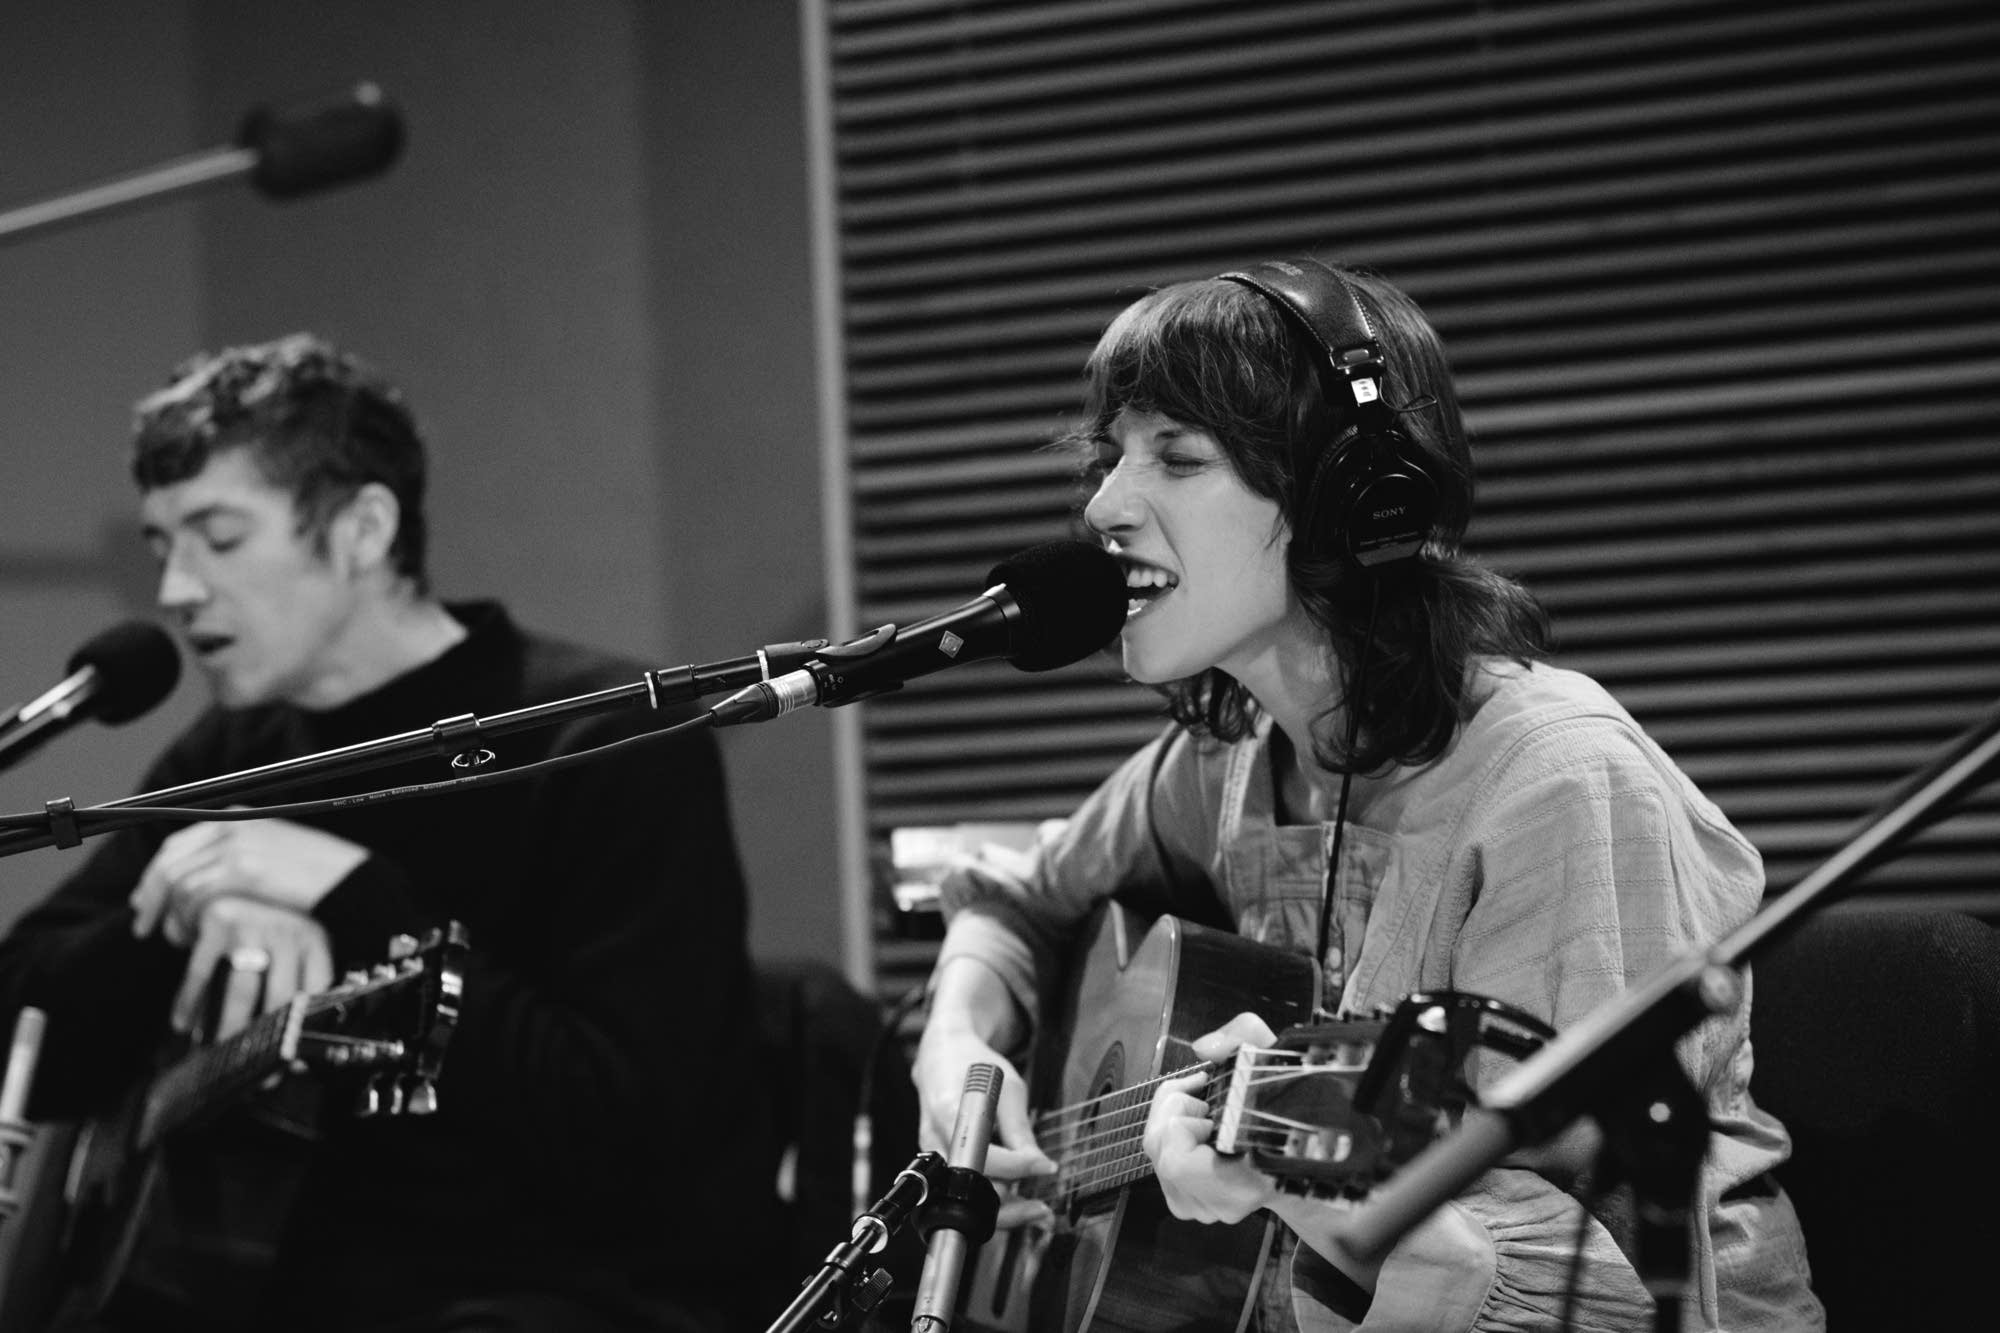 Aldous Harding performing in The Current studio